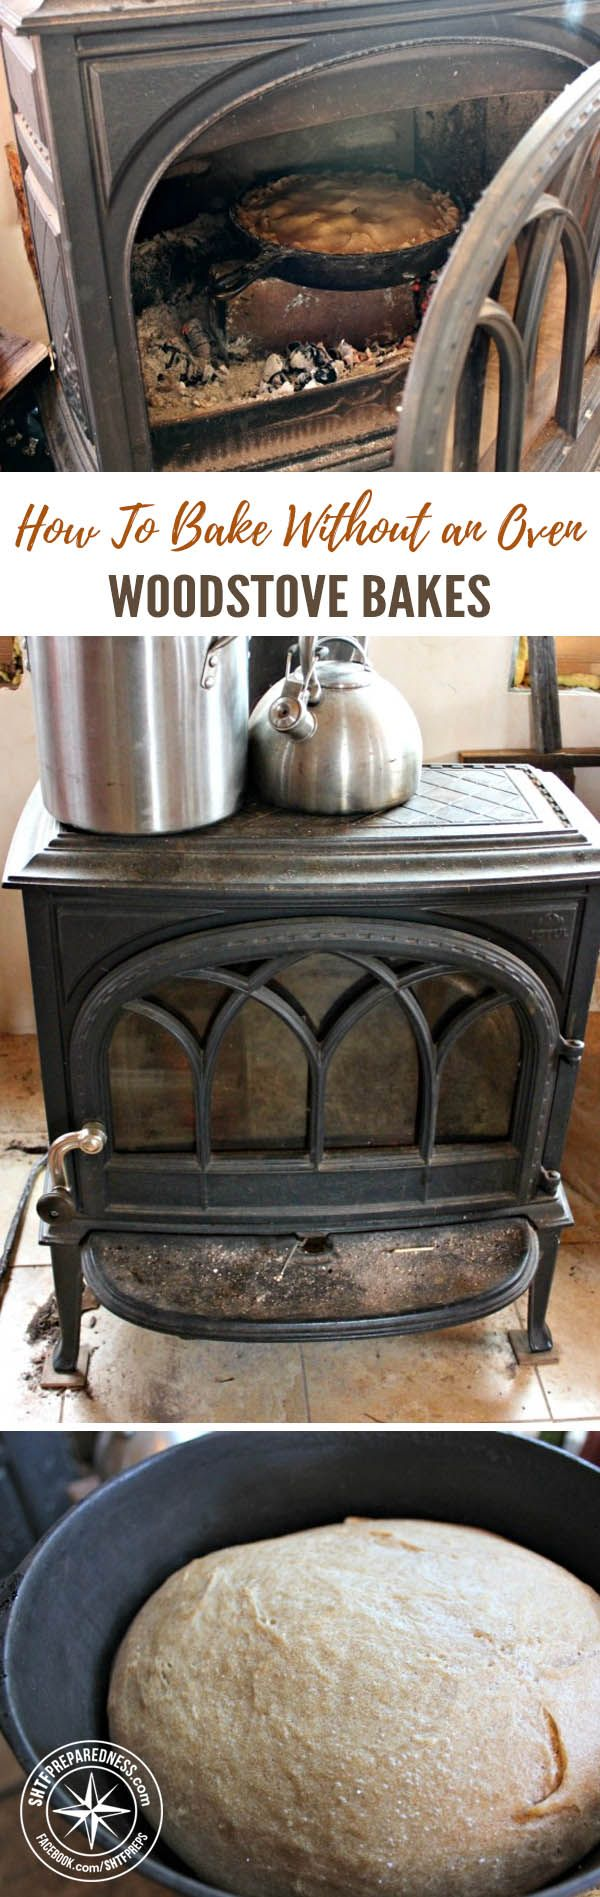 Baking Without an Oven - Woodstove Bakes — One of my favorite parts of the holiday season is the food; the baked goods, in particular. Living off-grid doesn't mean you can't enjoy some fresh baking. On Homestead Honey, there is an article on how to bake in your woodstove during the winter.